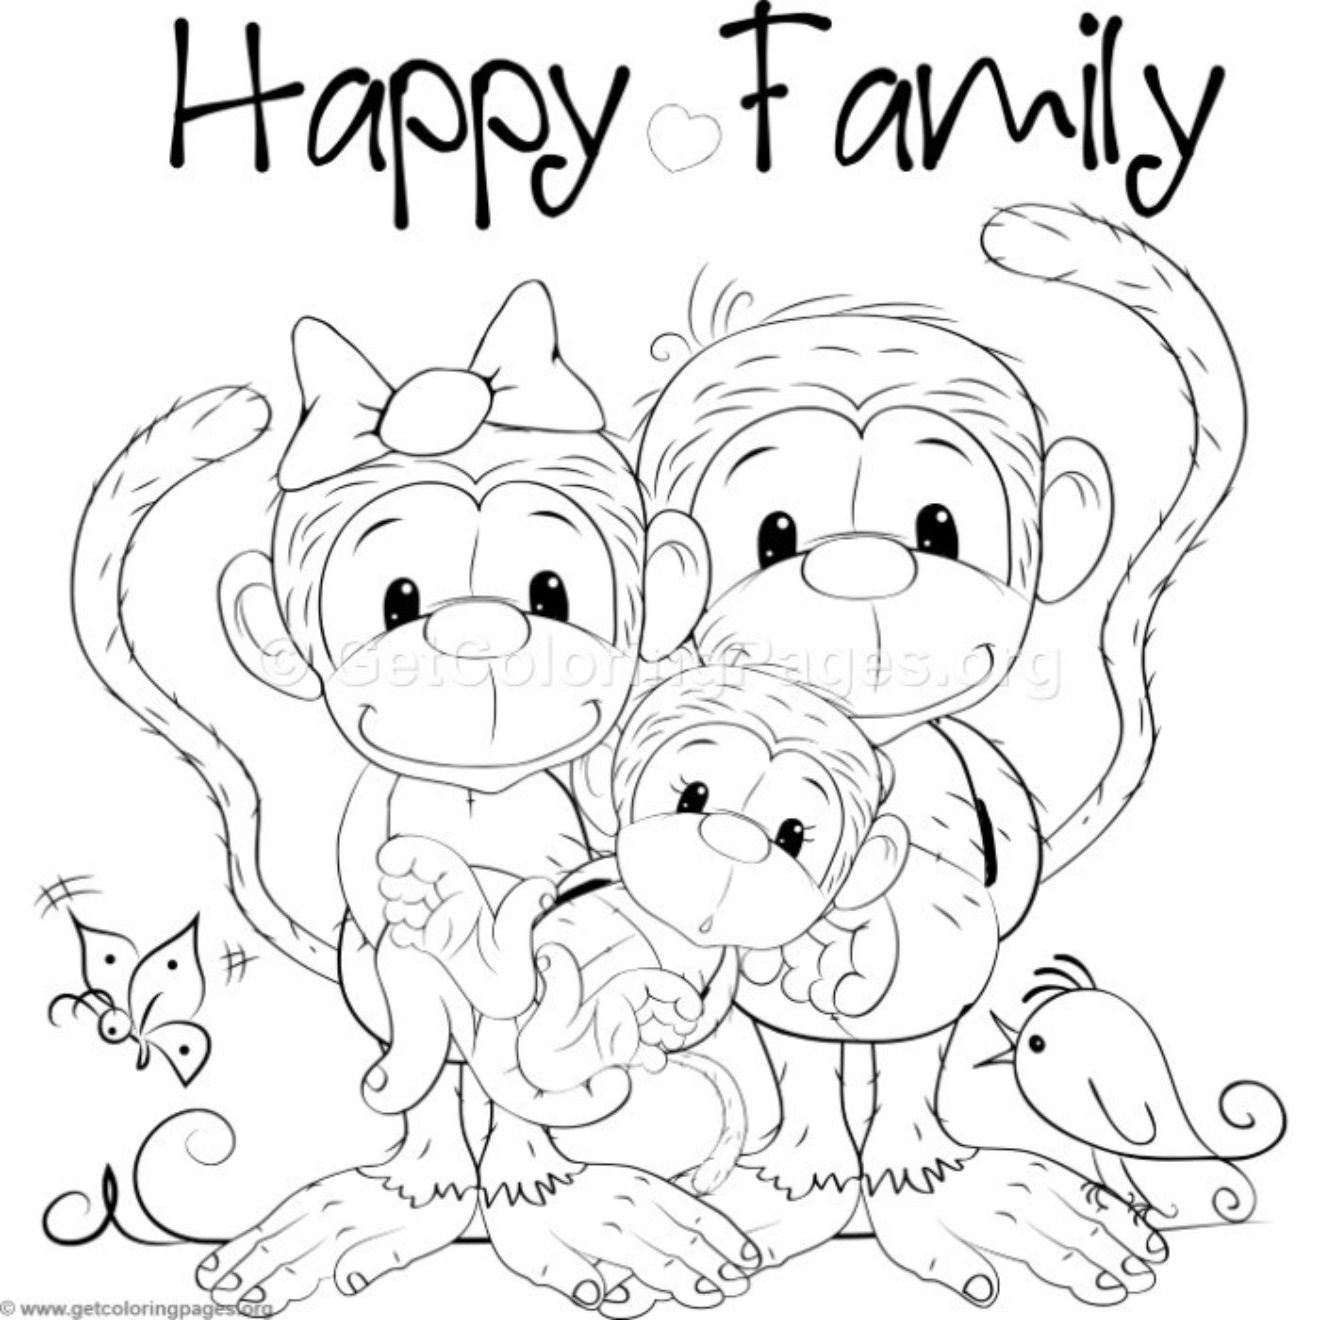 Cute Monkey 7 Coloring Pages With Images Monkey Coloring Pages